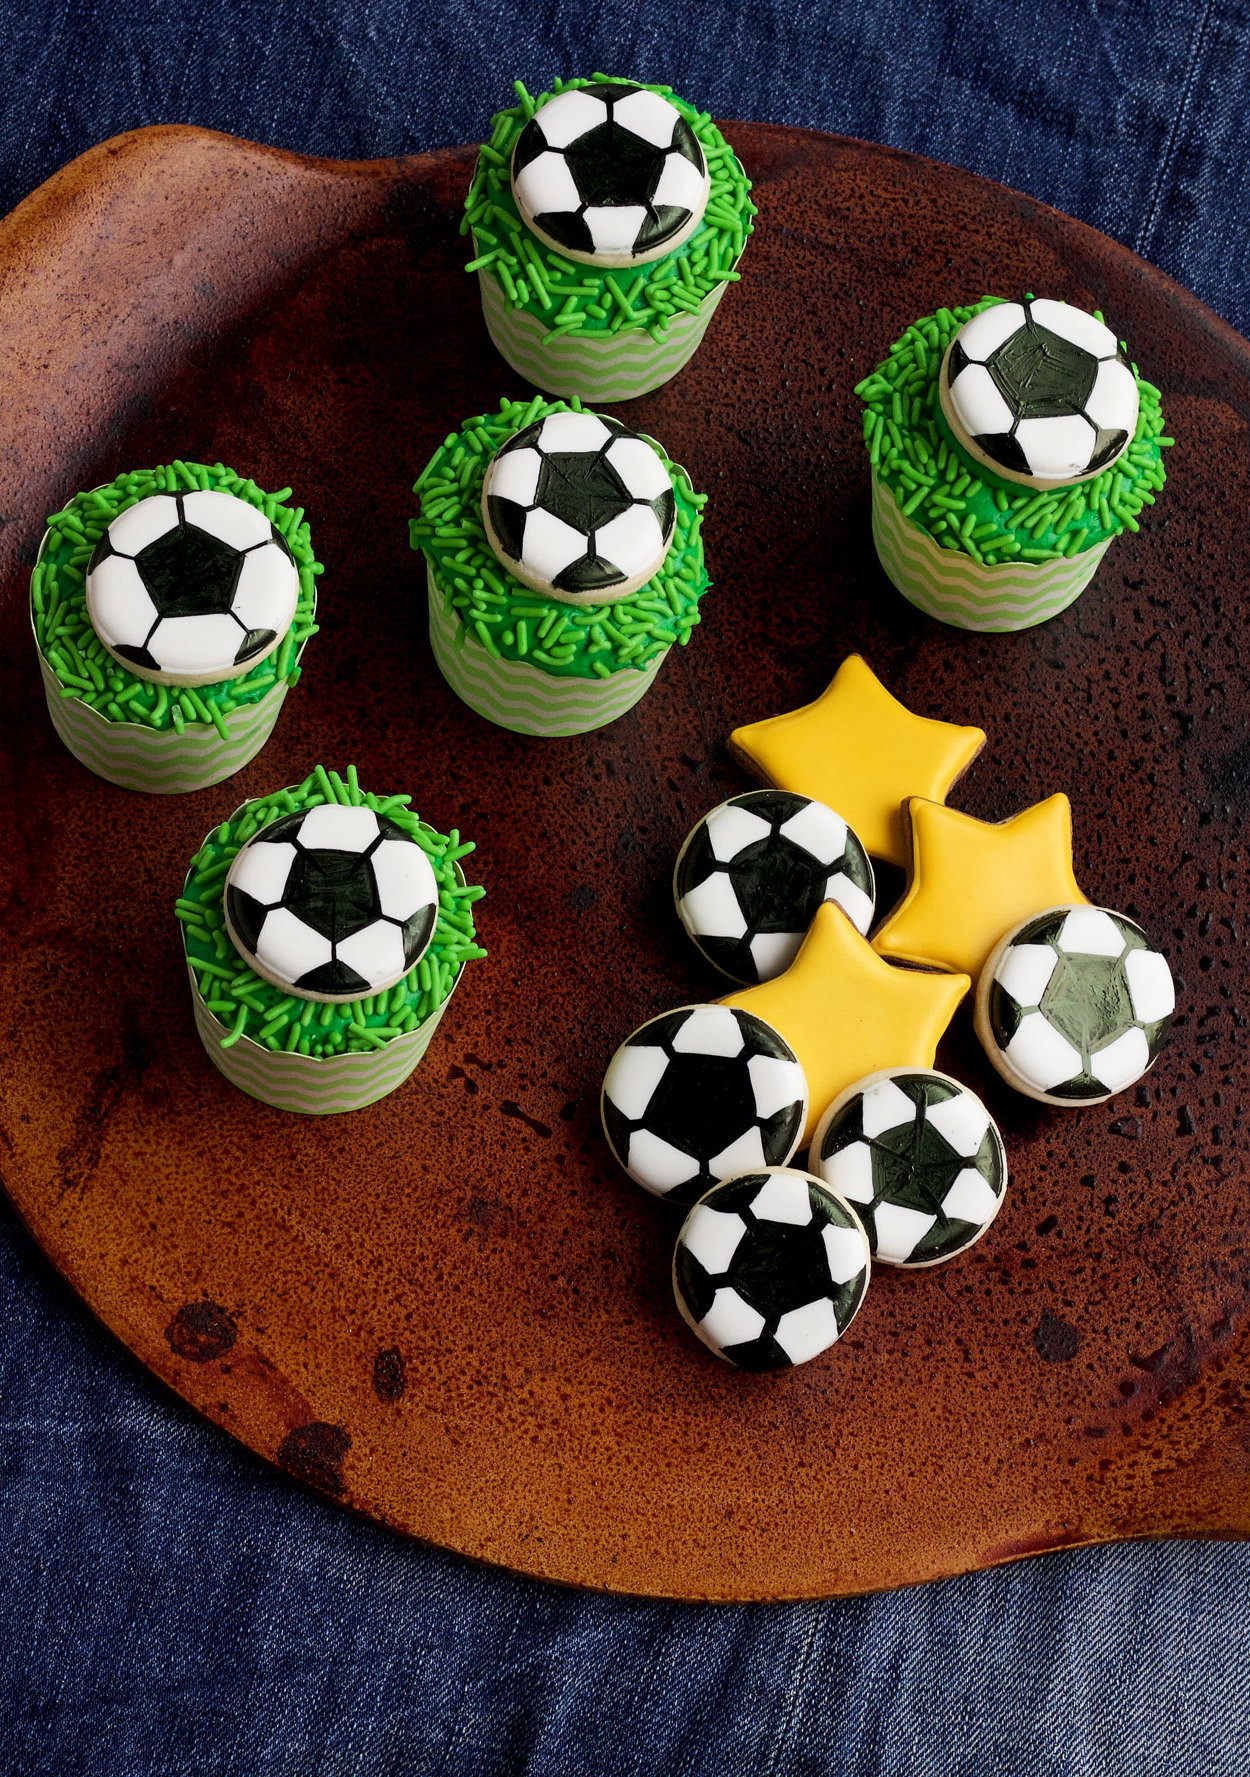 Sugar Goals How To Make Soccer Cupcakes Martha Stewart